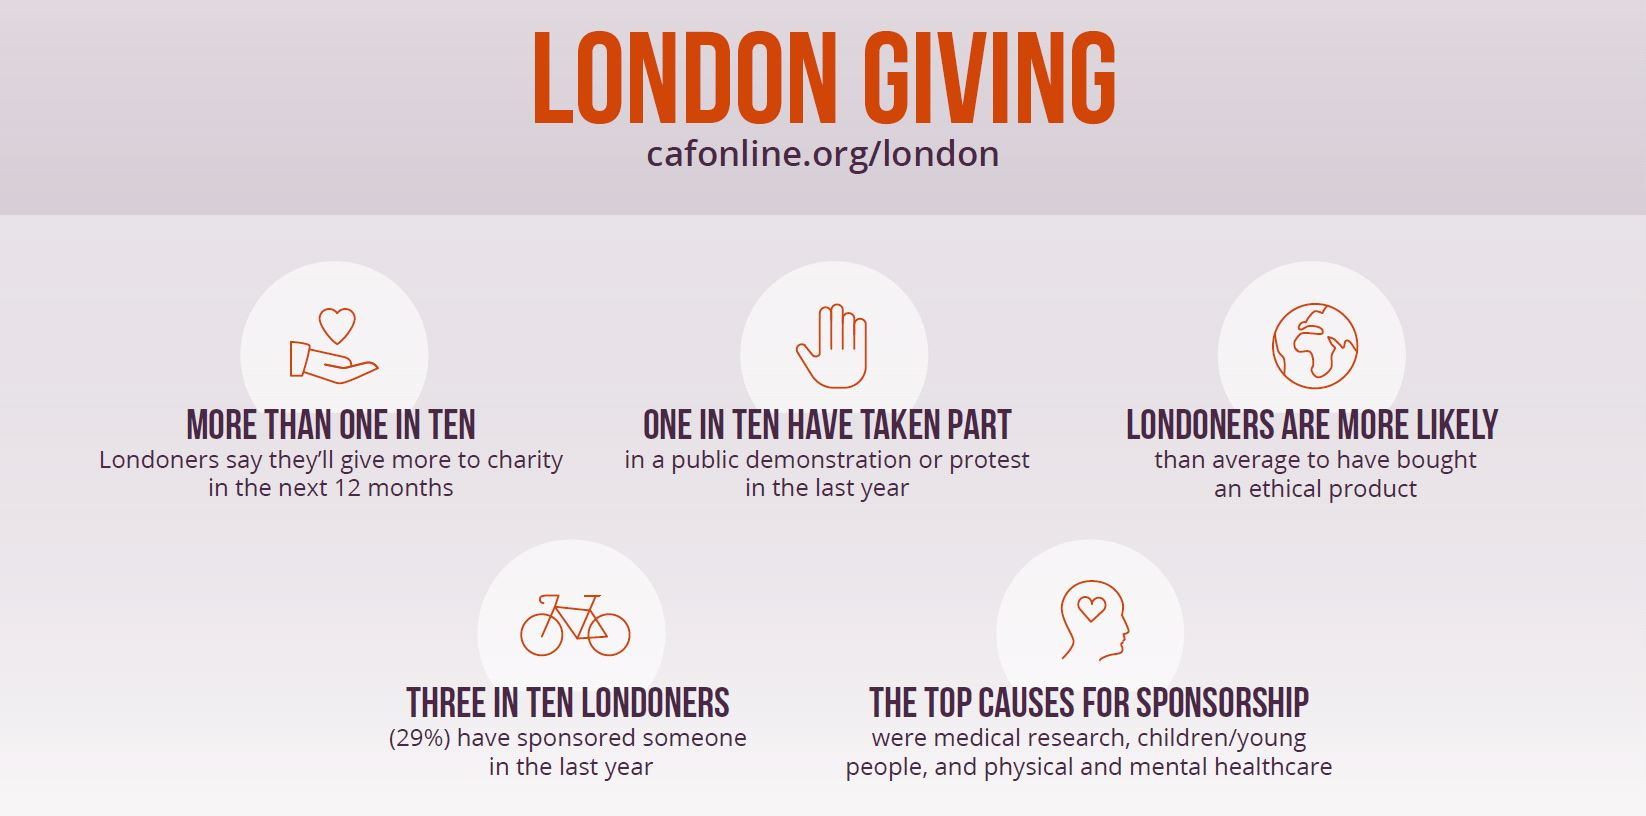 London Giving infographic